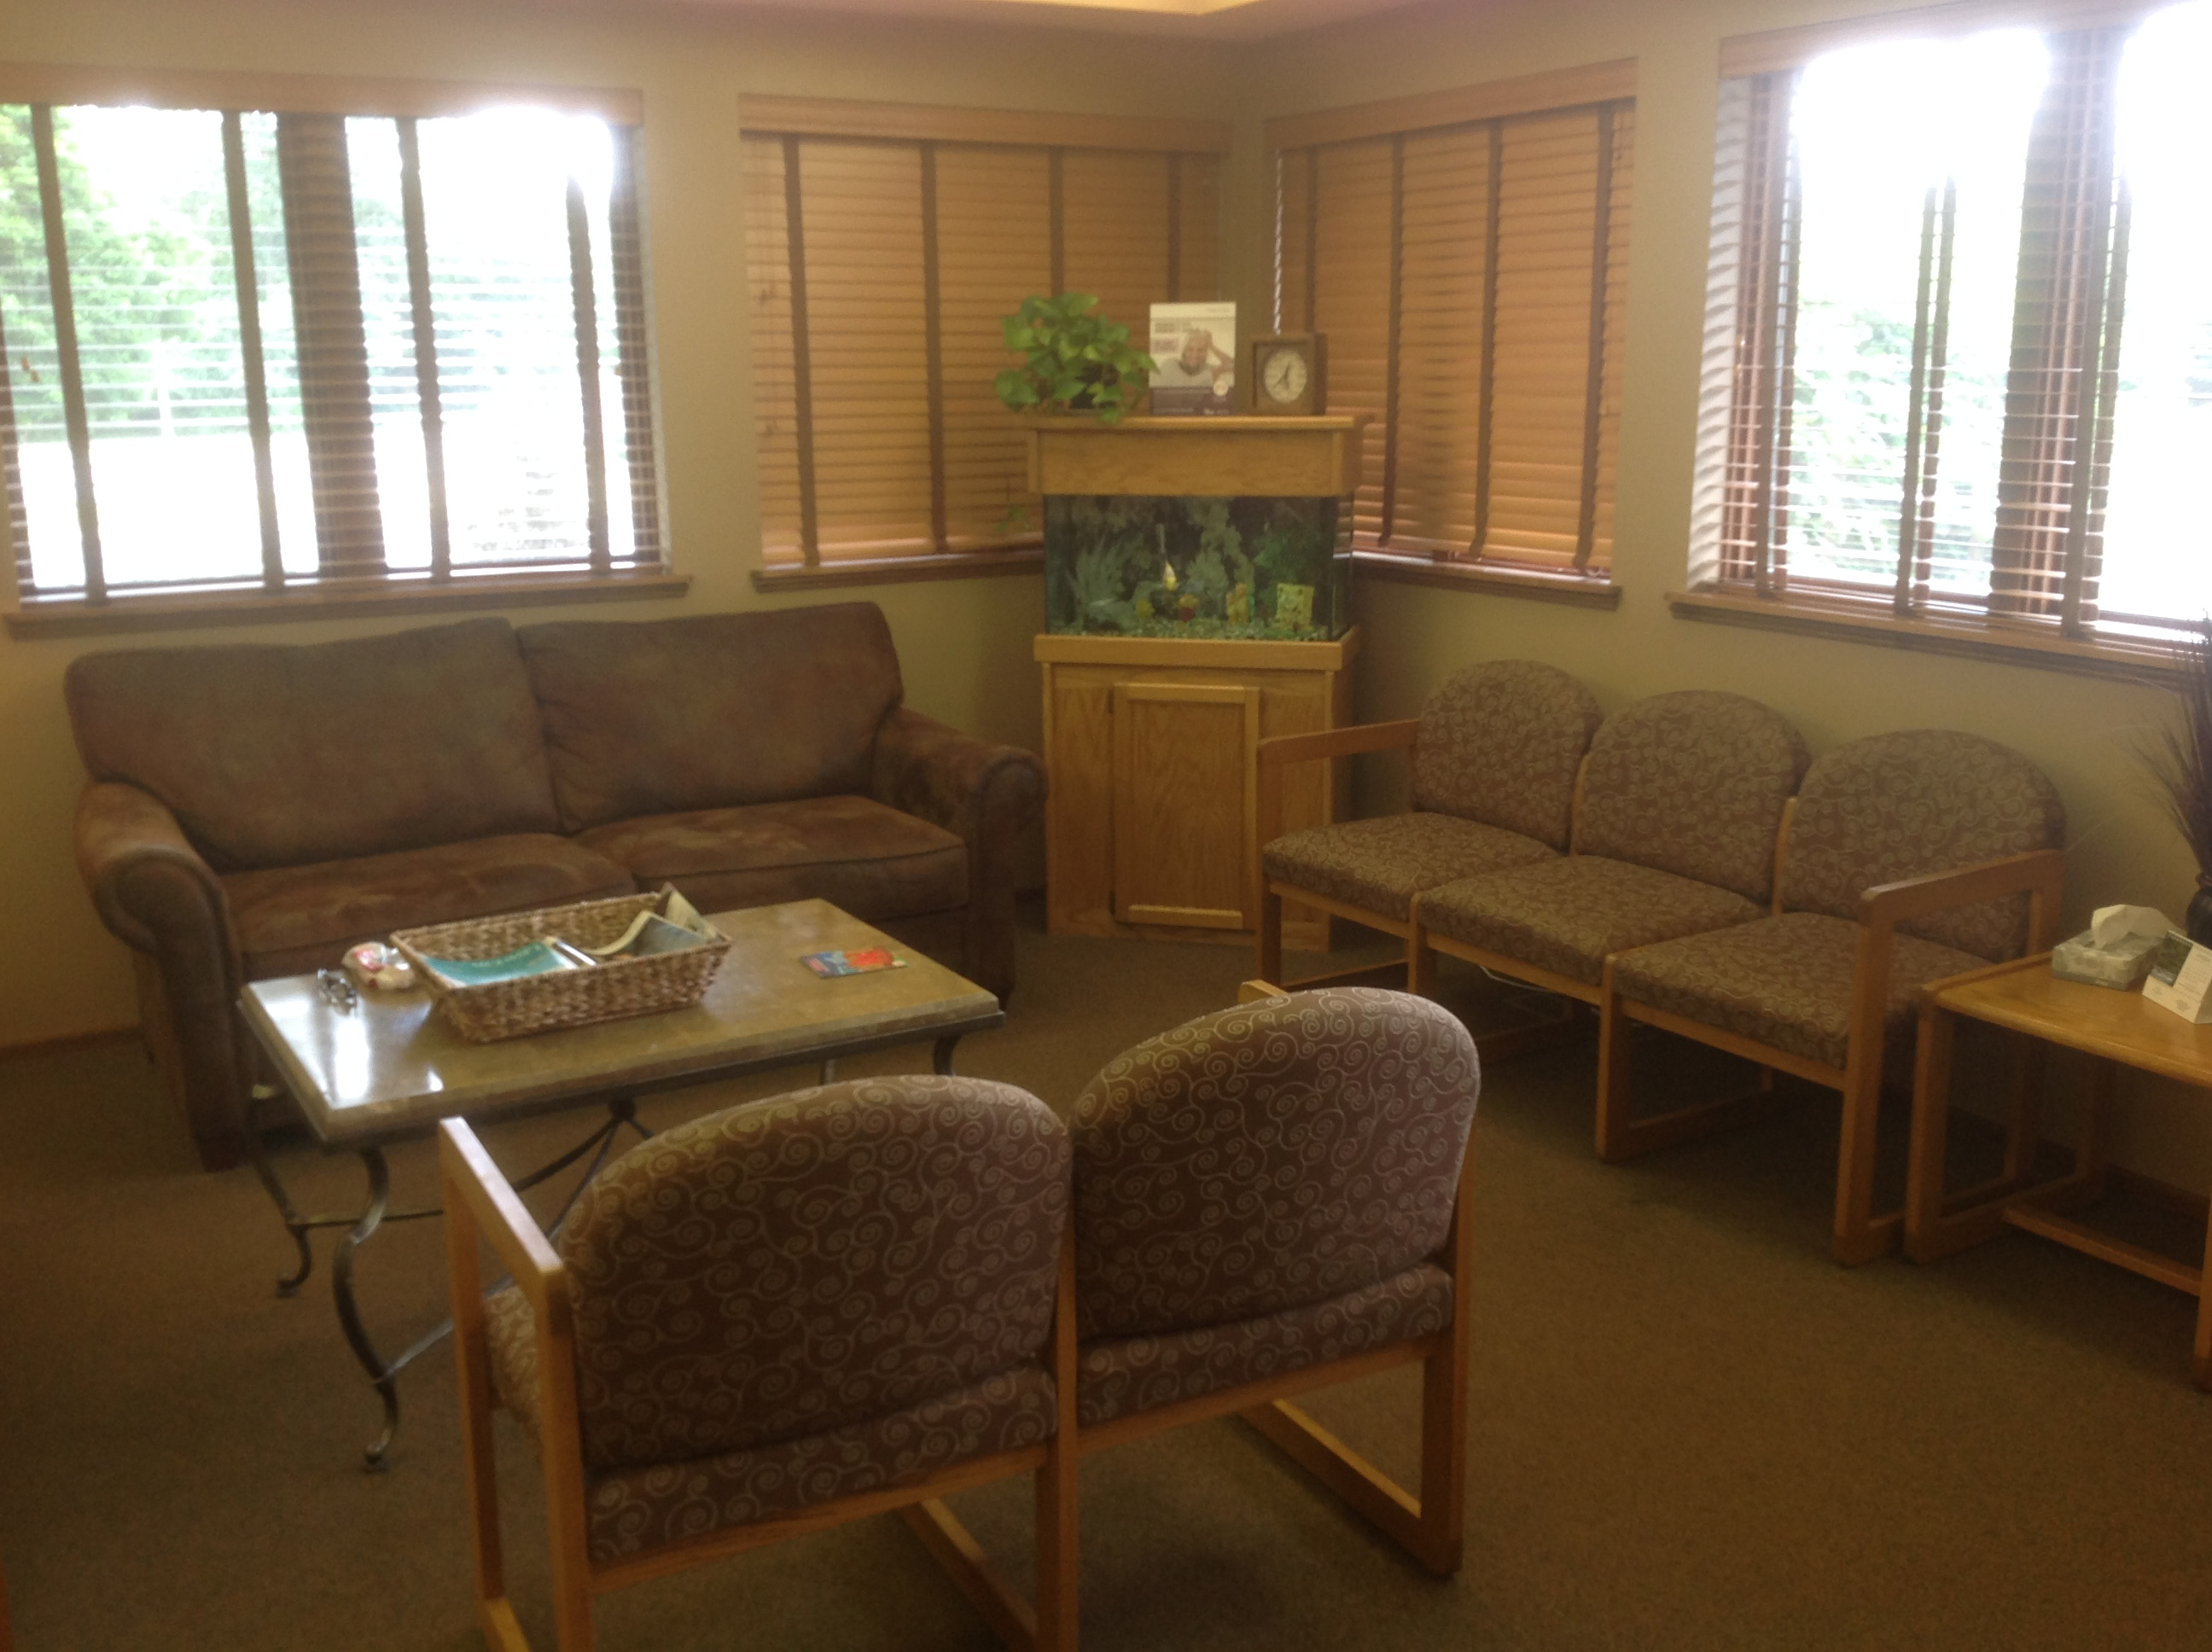 Complete Family Dentistry - R. Daron Sheline DDS image 11